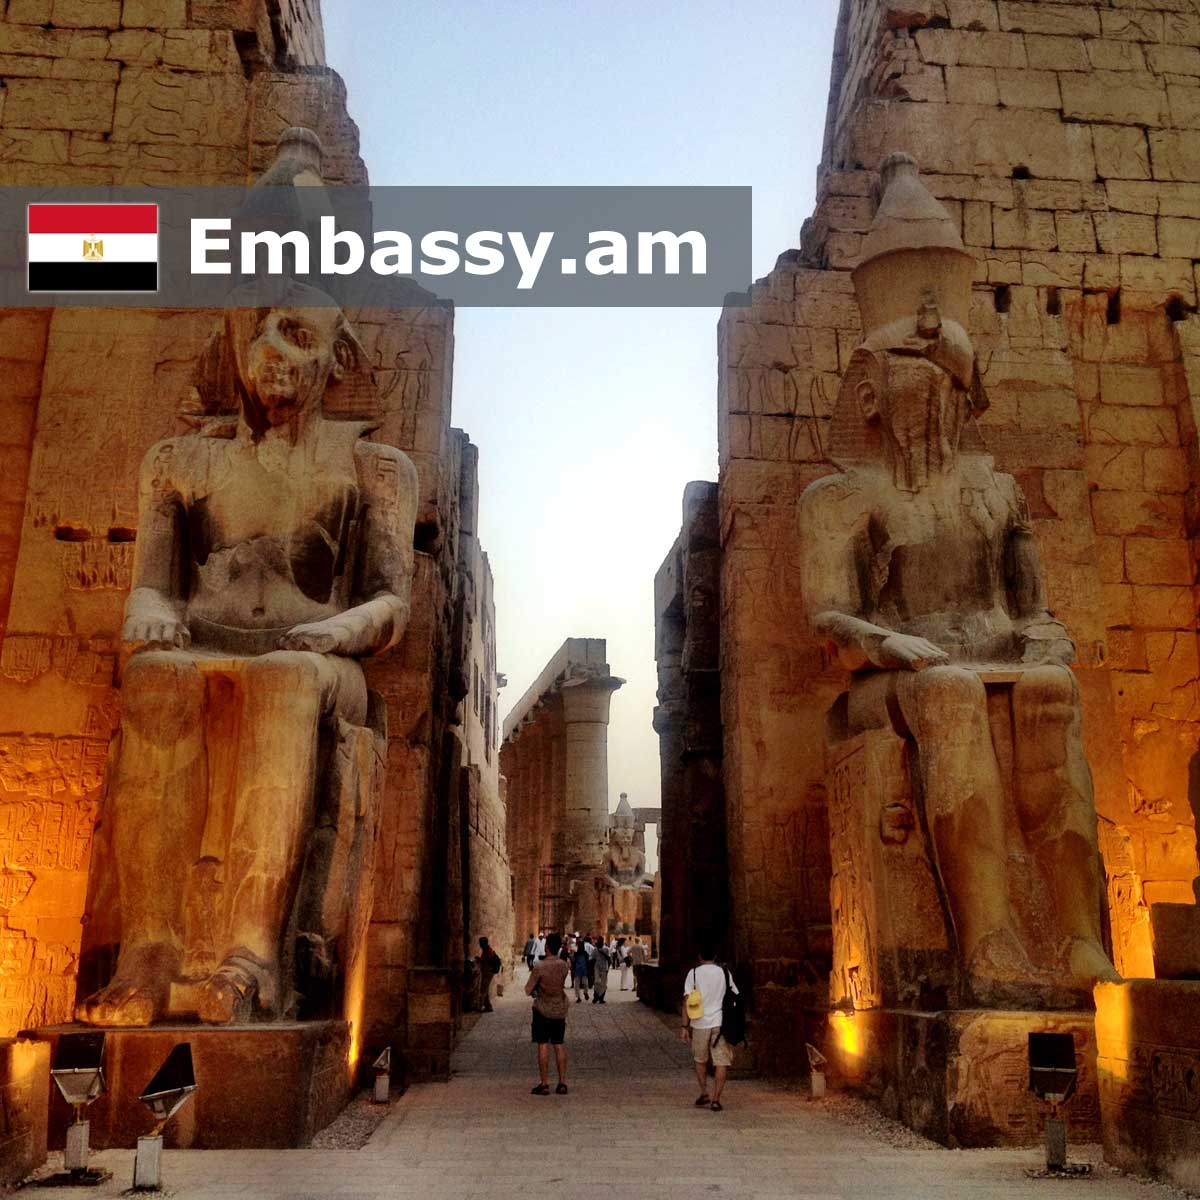 Luxor - Hotels in Egypt - Embassy.am